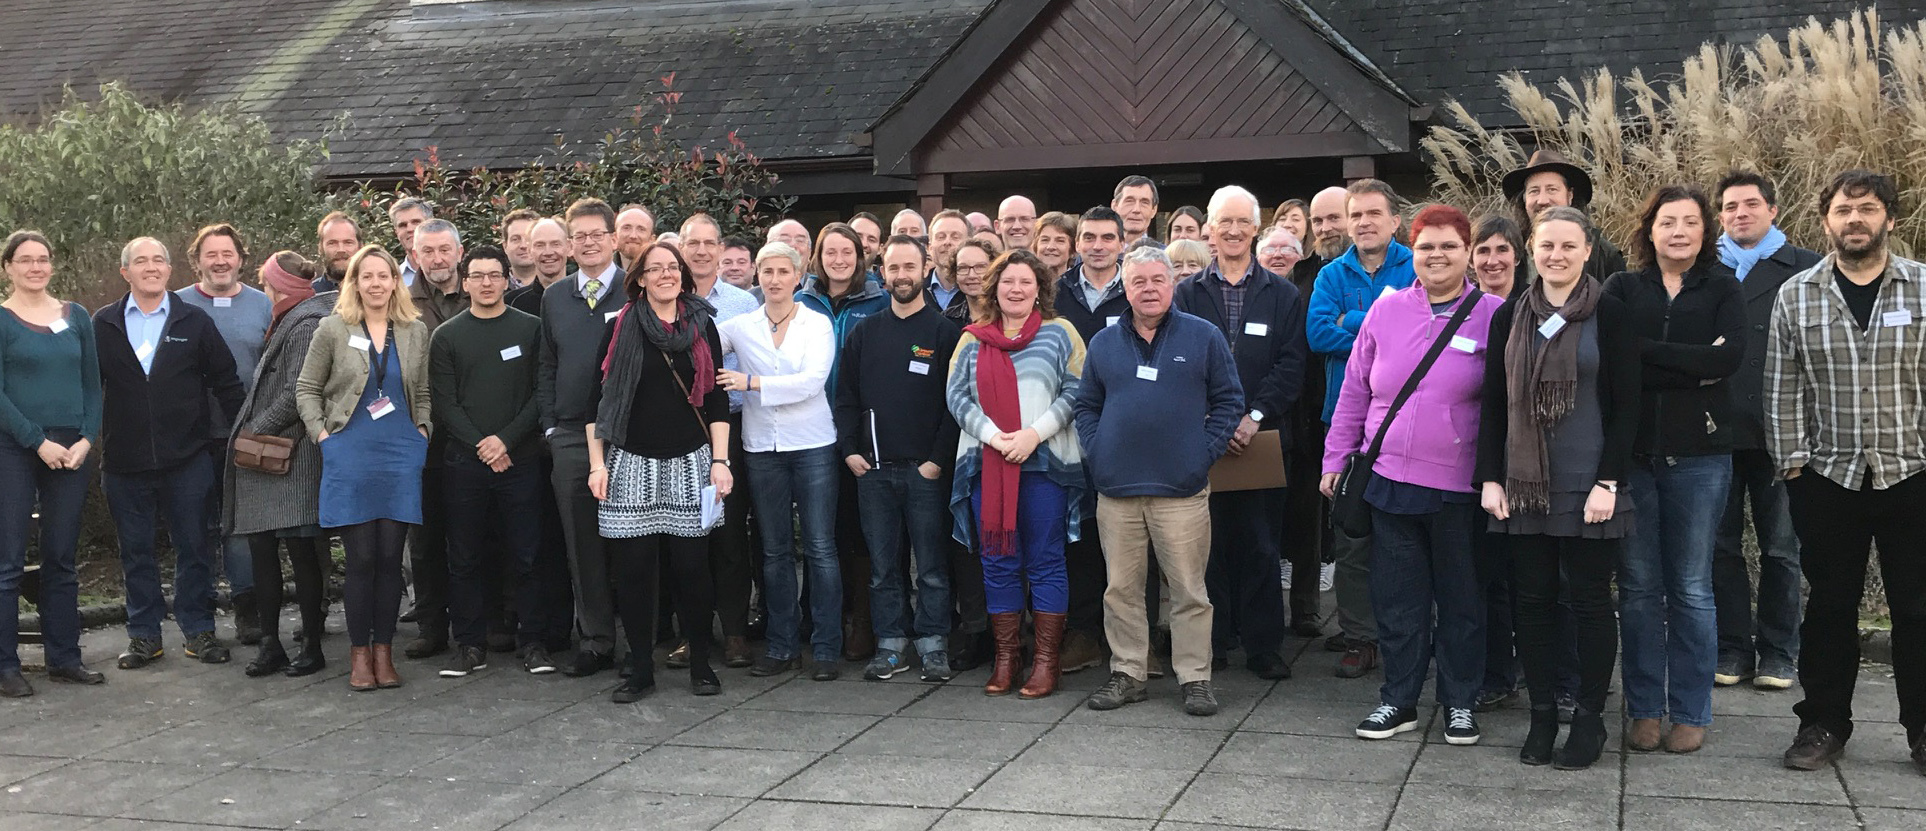 Delegates gathered at Murley Moss, Kendal, to discuss the potential for paludiculture in Cumbria